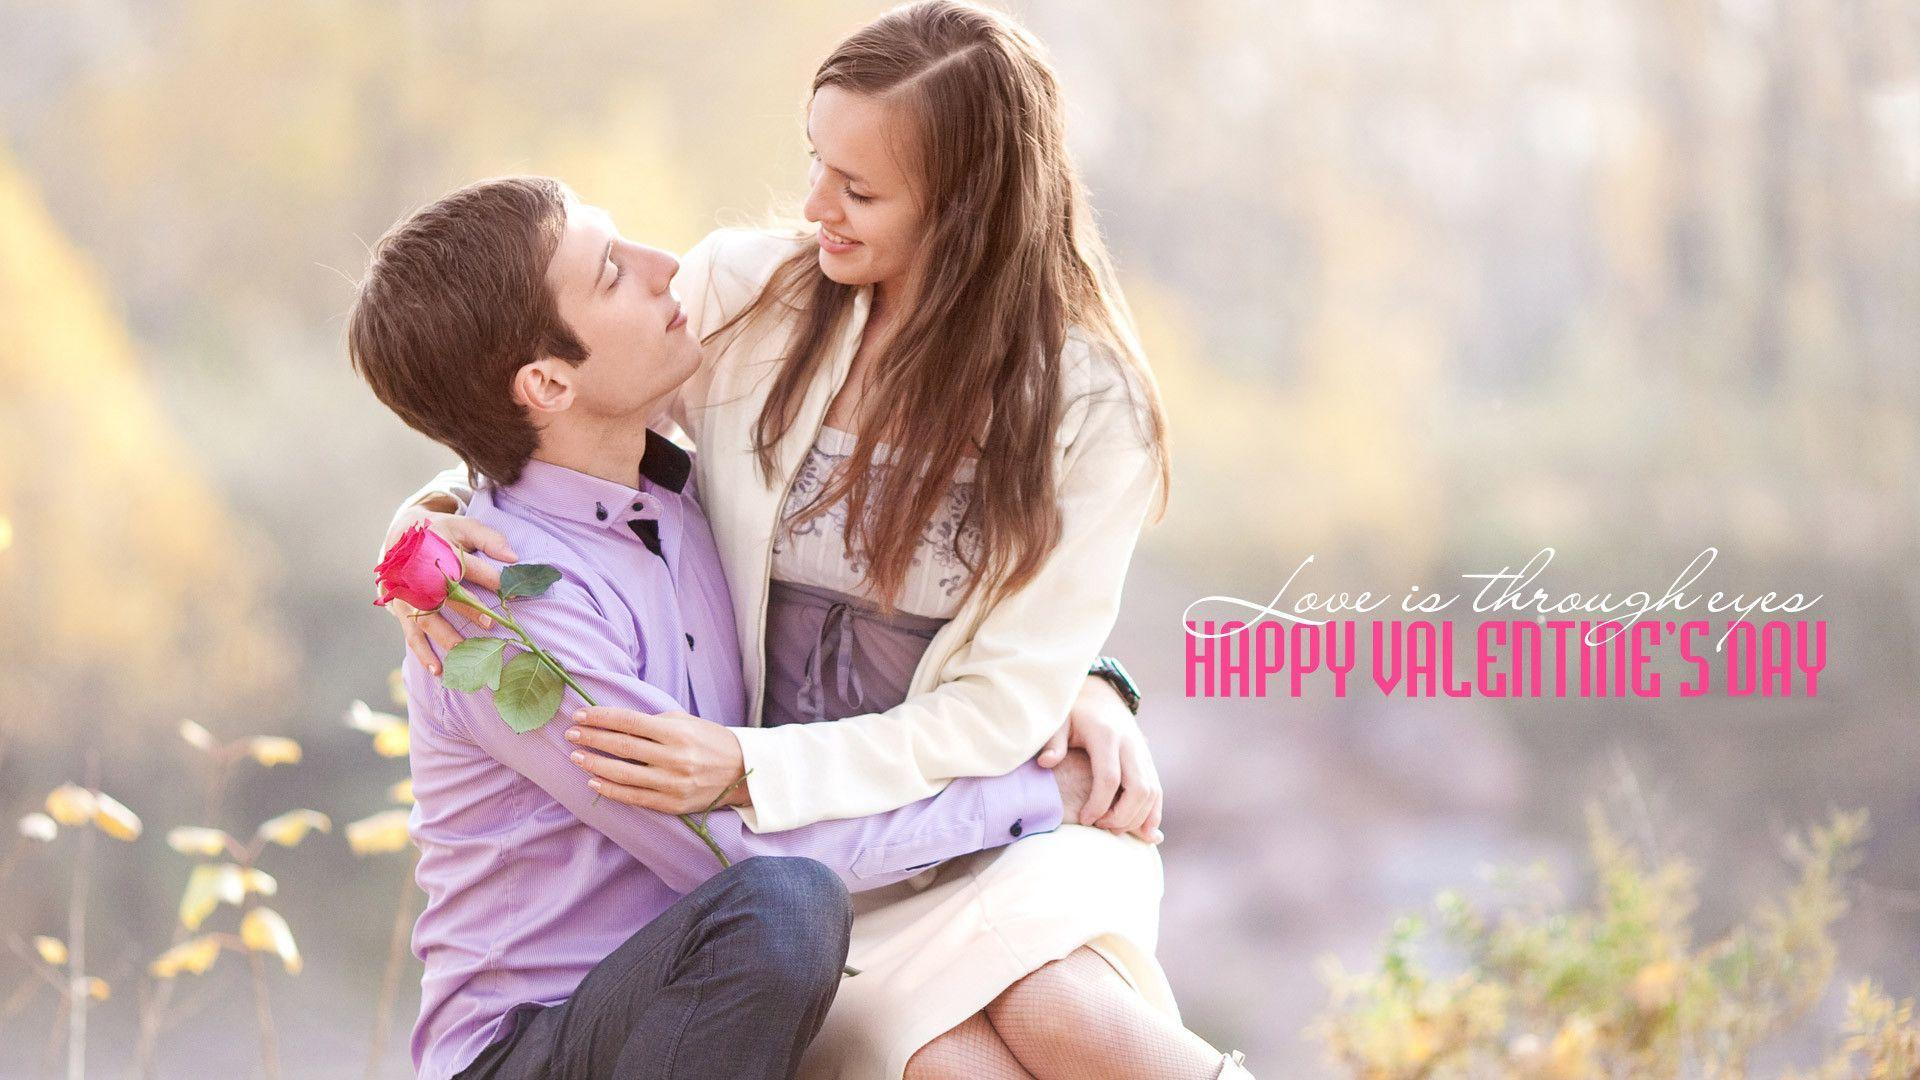 Love cute Romantic Wallpaper : cute couple Backgrounds - Wallpaper cave